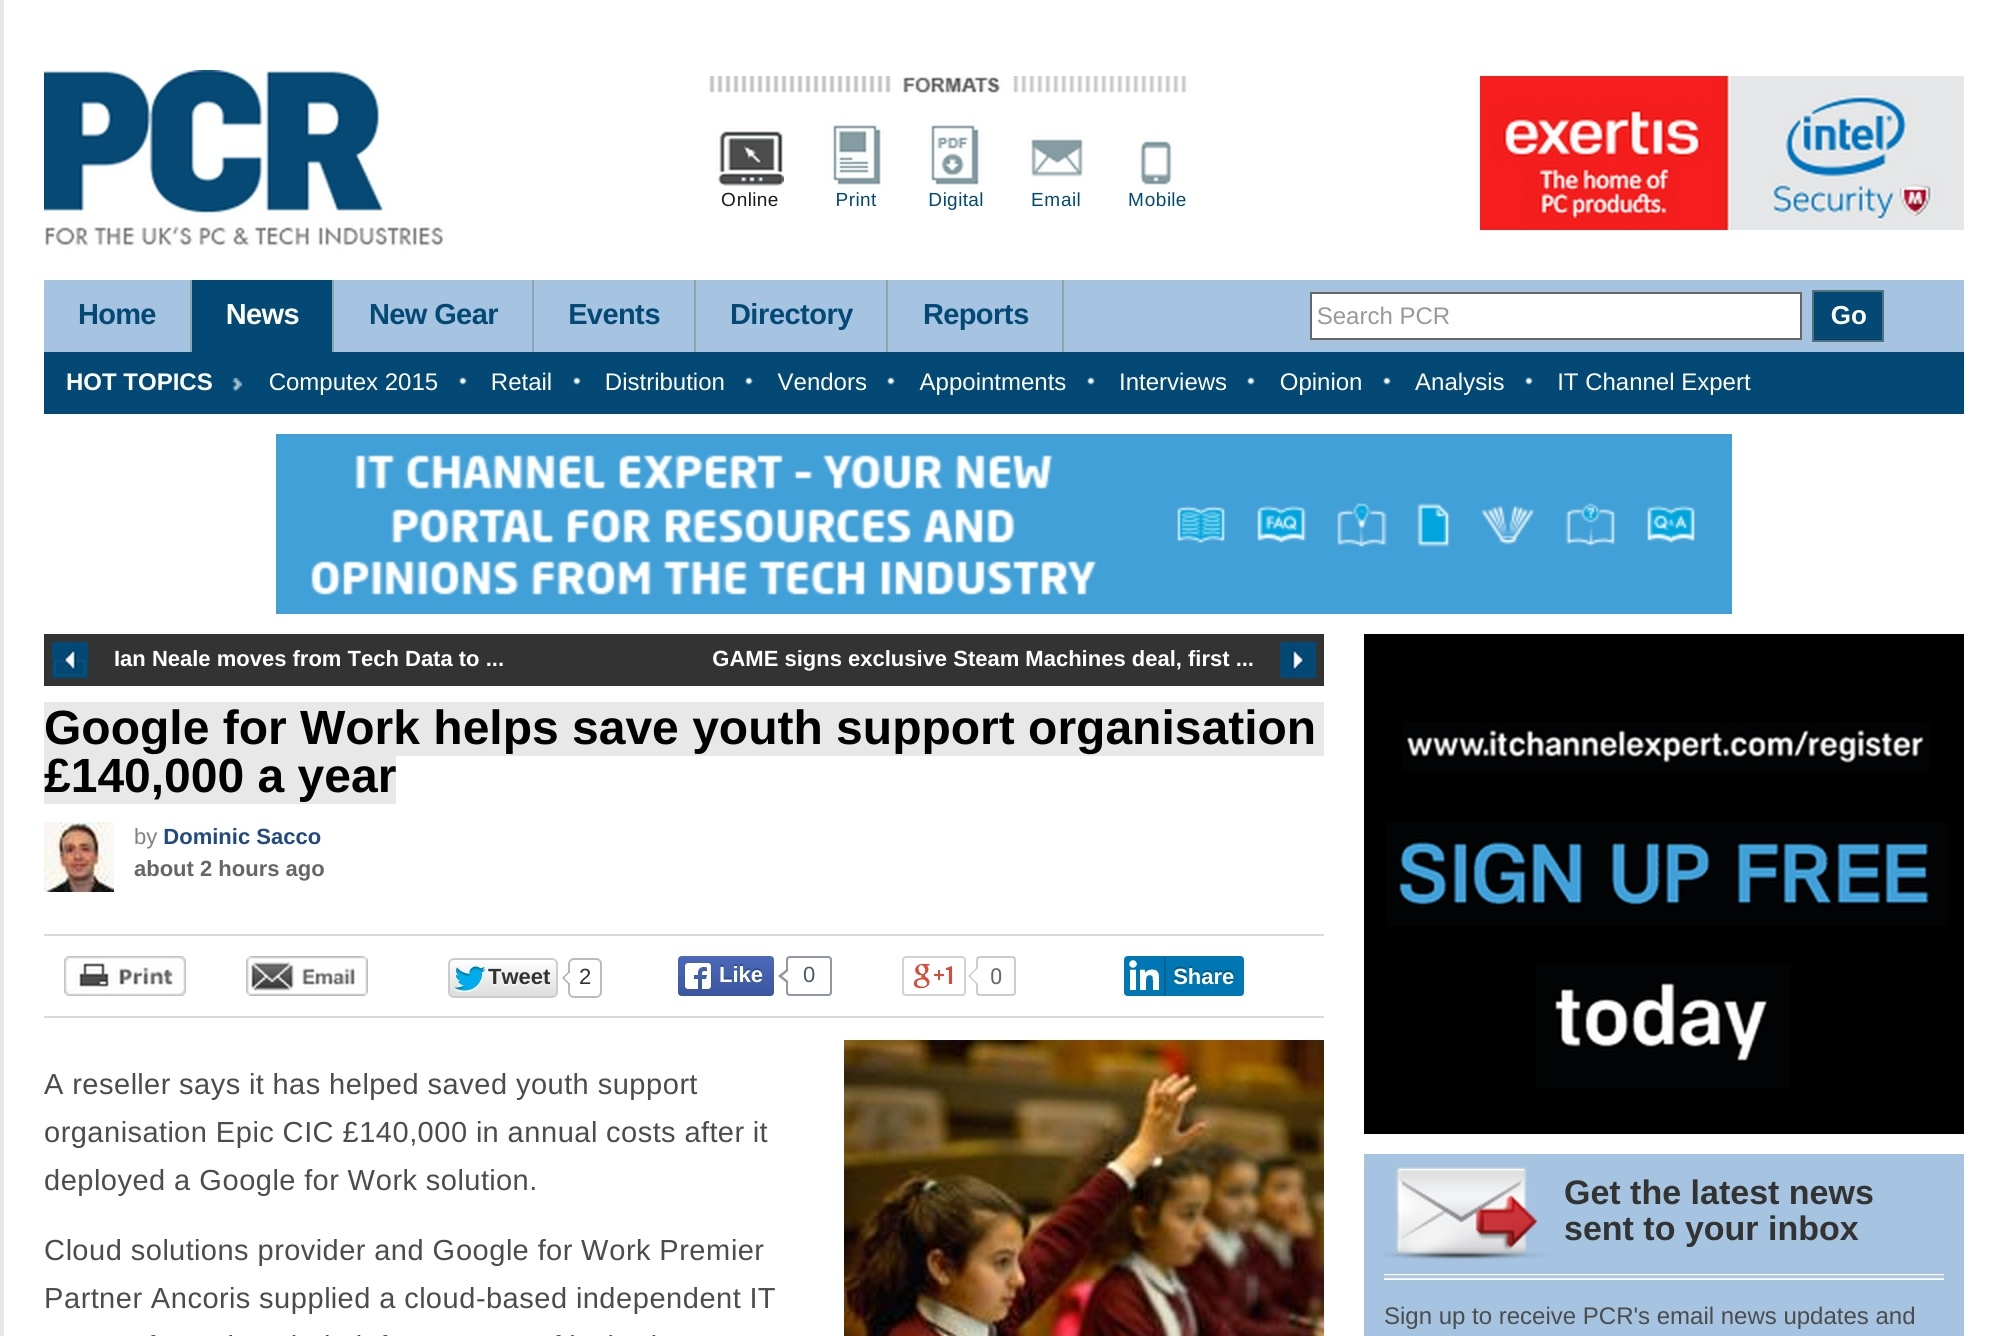 Ancoris helps save youth support organisation £140,000 a year